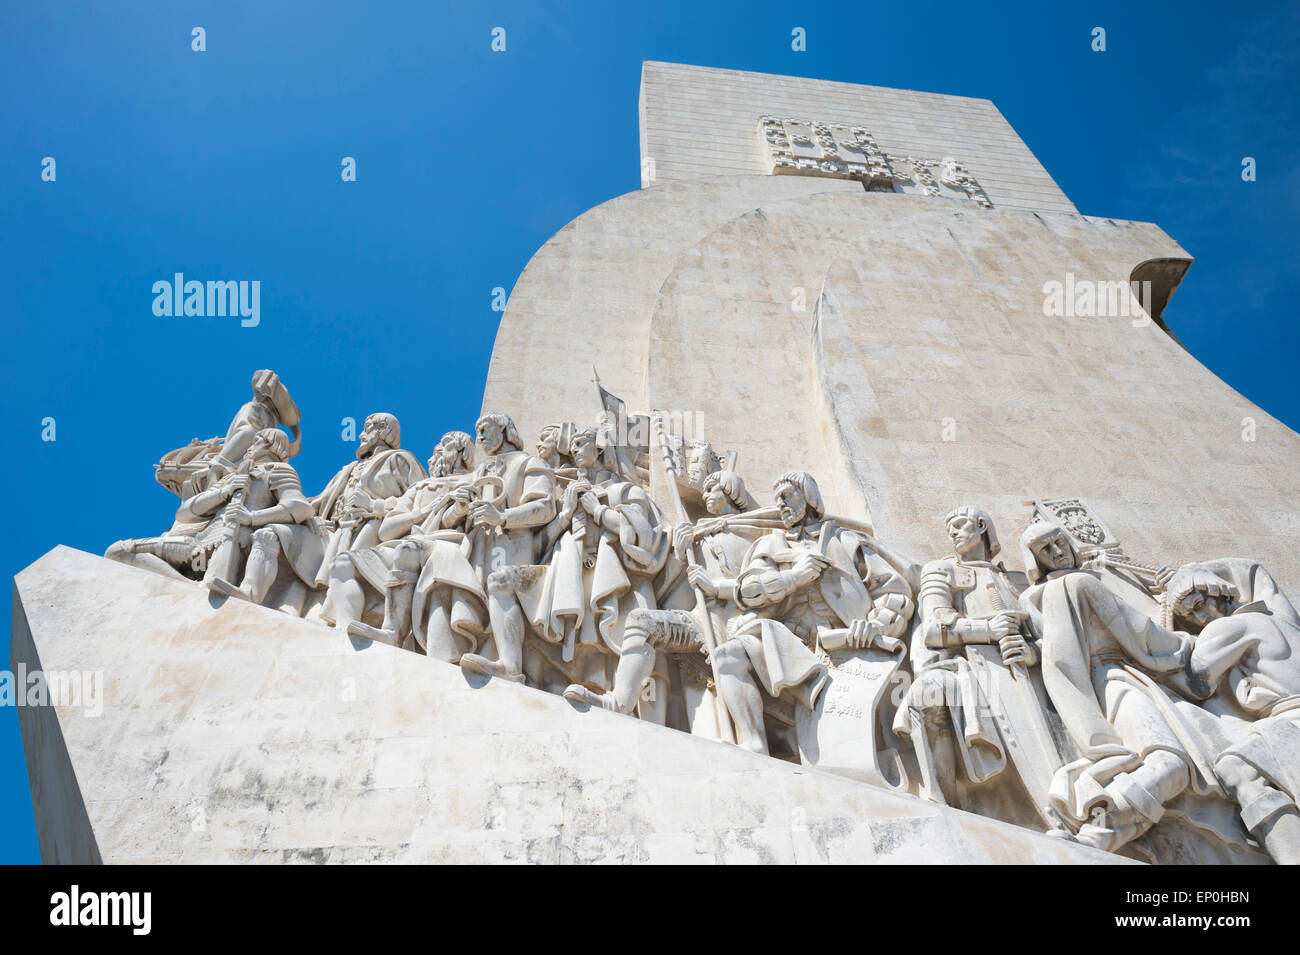 Padrao dos Descobrimentos, seafaring memorial, age of discovery, Belem on the Tagus River, Lisbon, Portugal - Stock Image